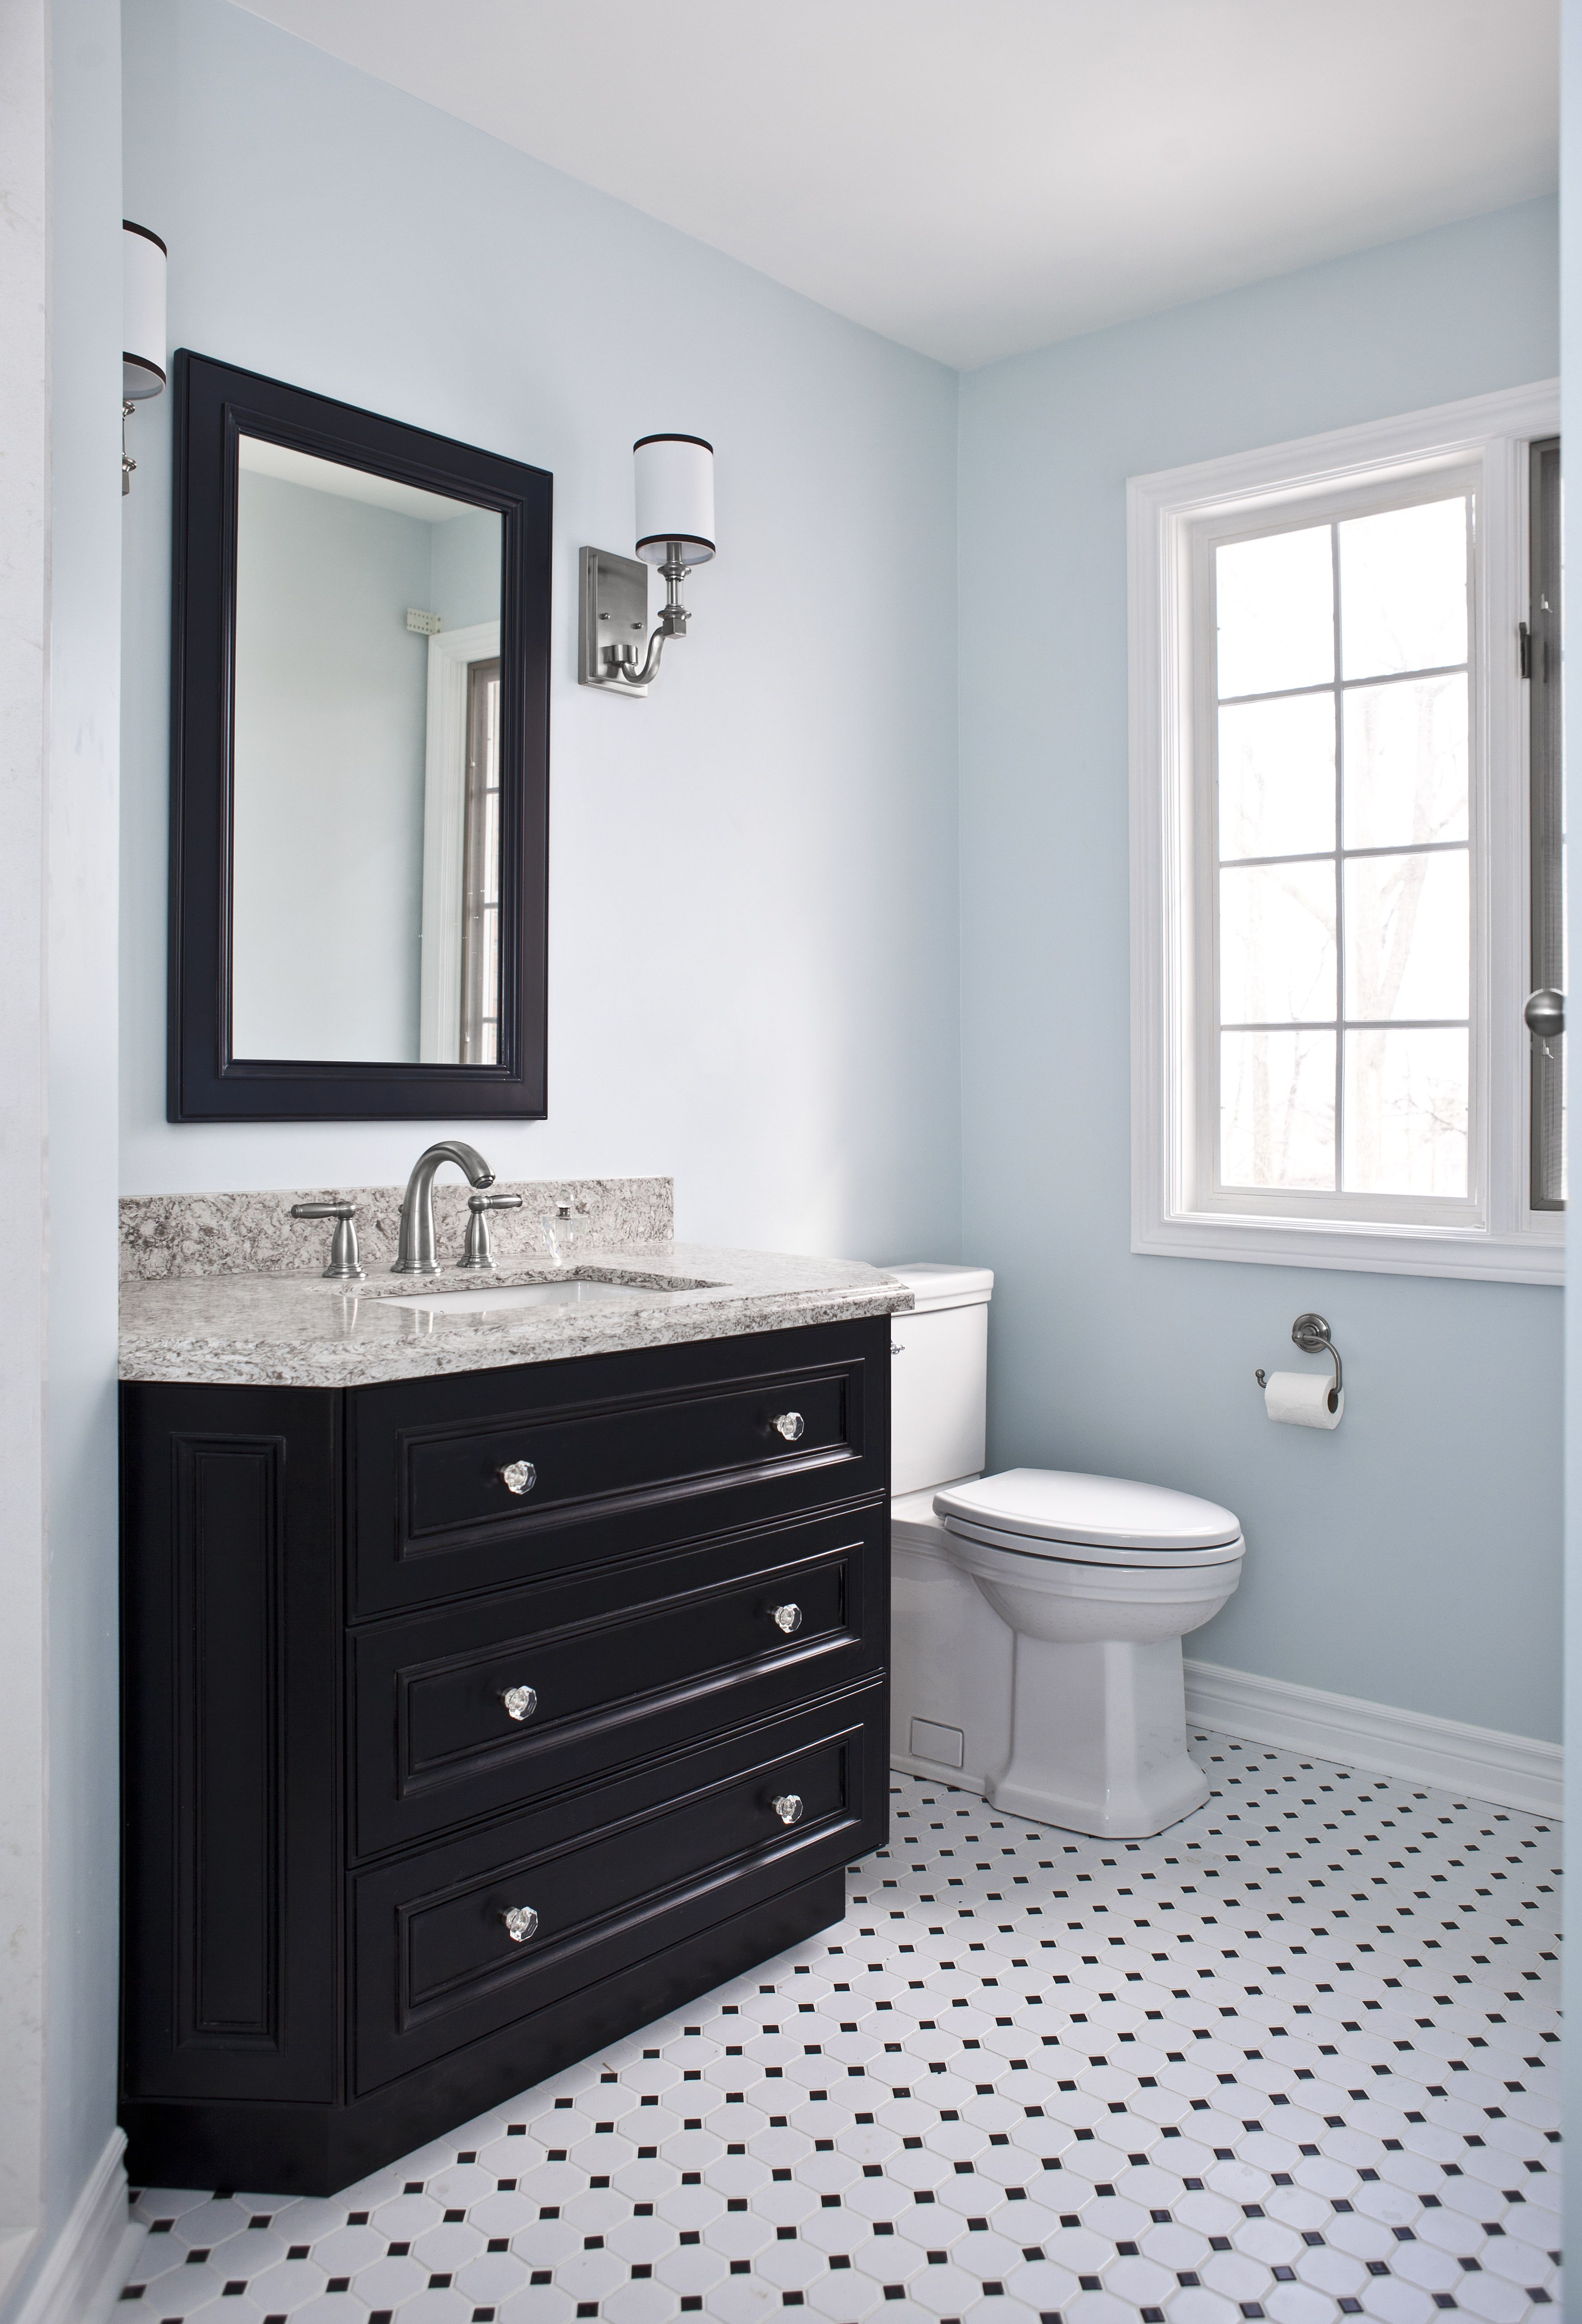 Transitional Bathroom Renovation Located In Burlington Ontario - A1 bathroom renovations